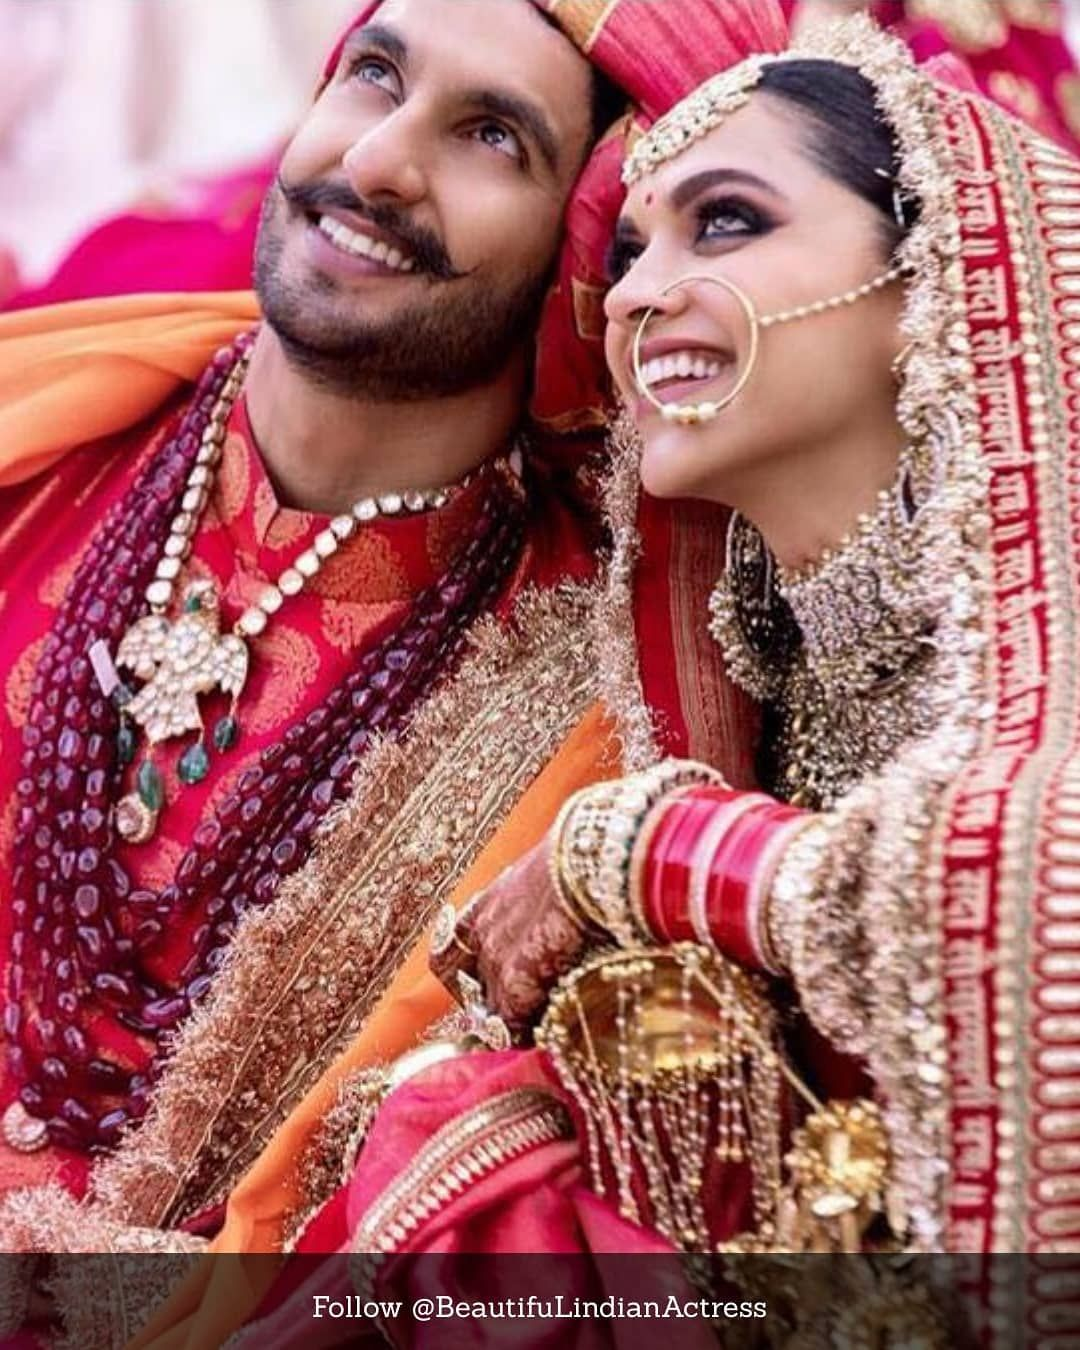 Complete Photos Of Ranveer Singh And Deepika Padukone S Marriage They Are So Cute Together I Love This C Bollywood Wedding Desi Bride Deepika Padukone Lehenga